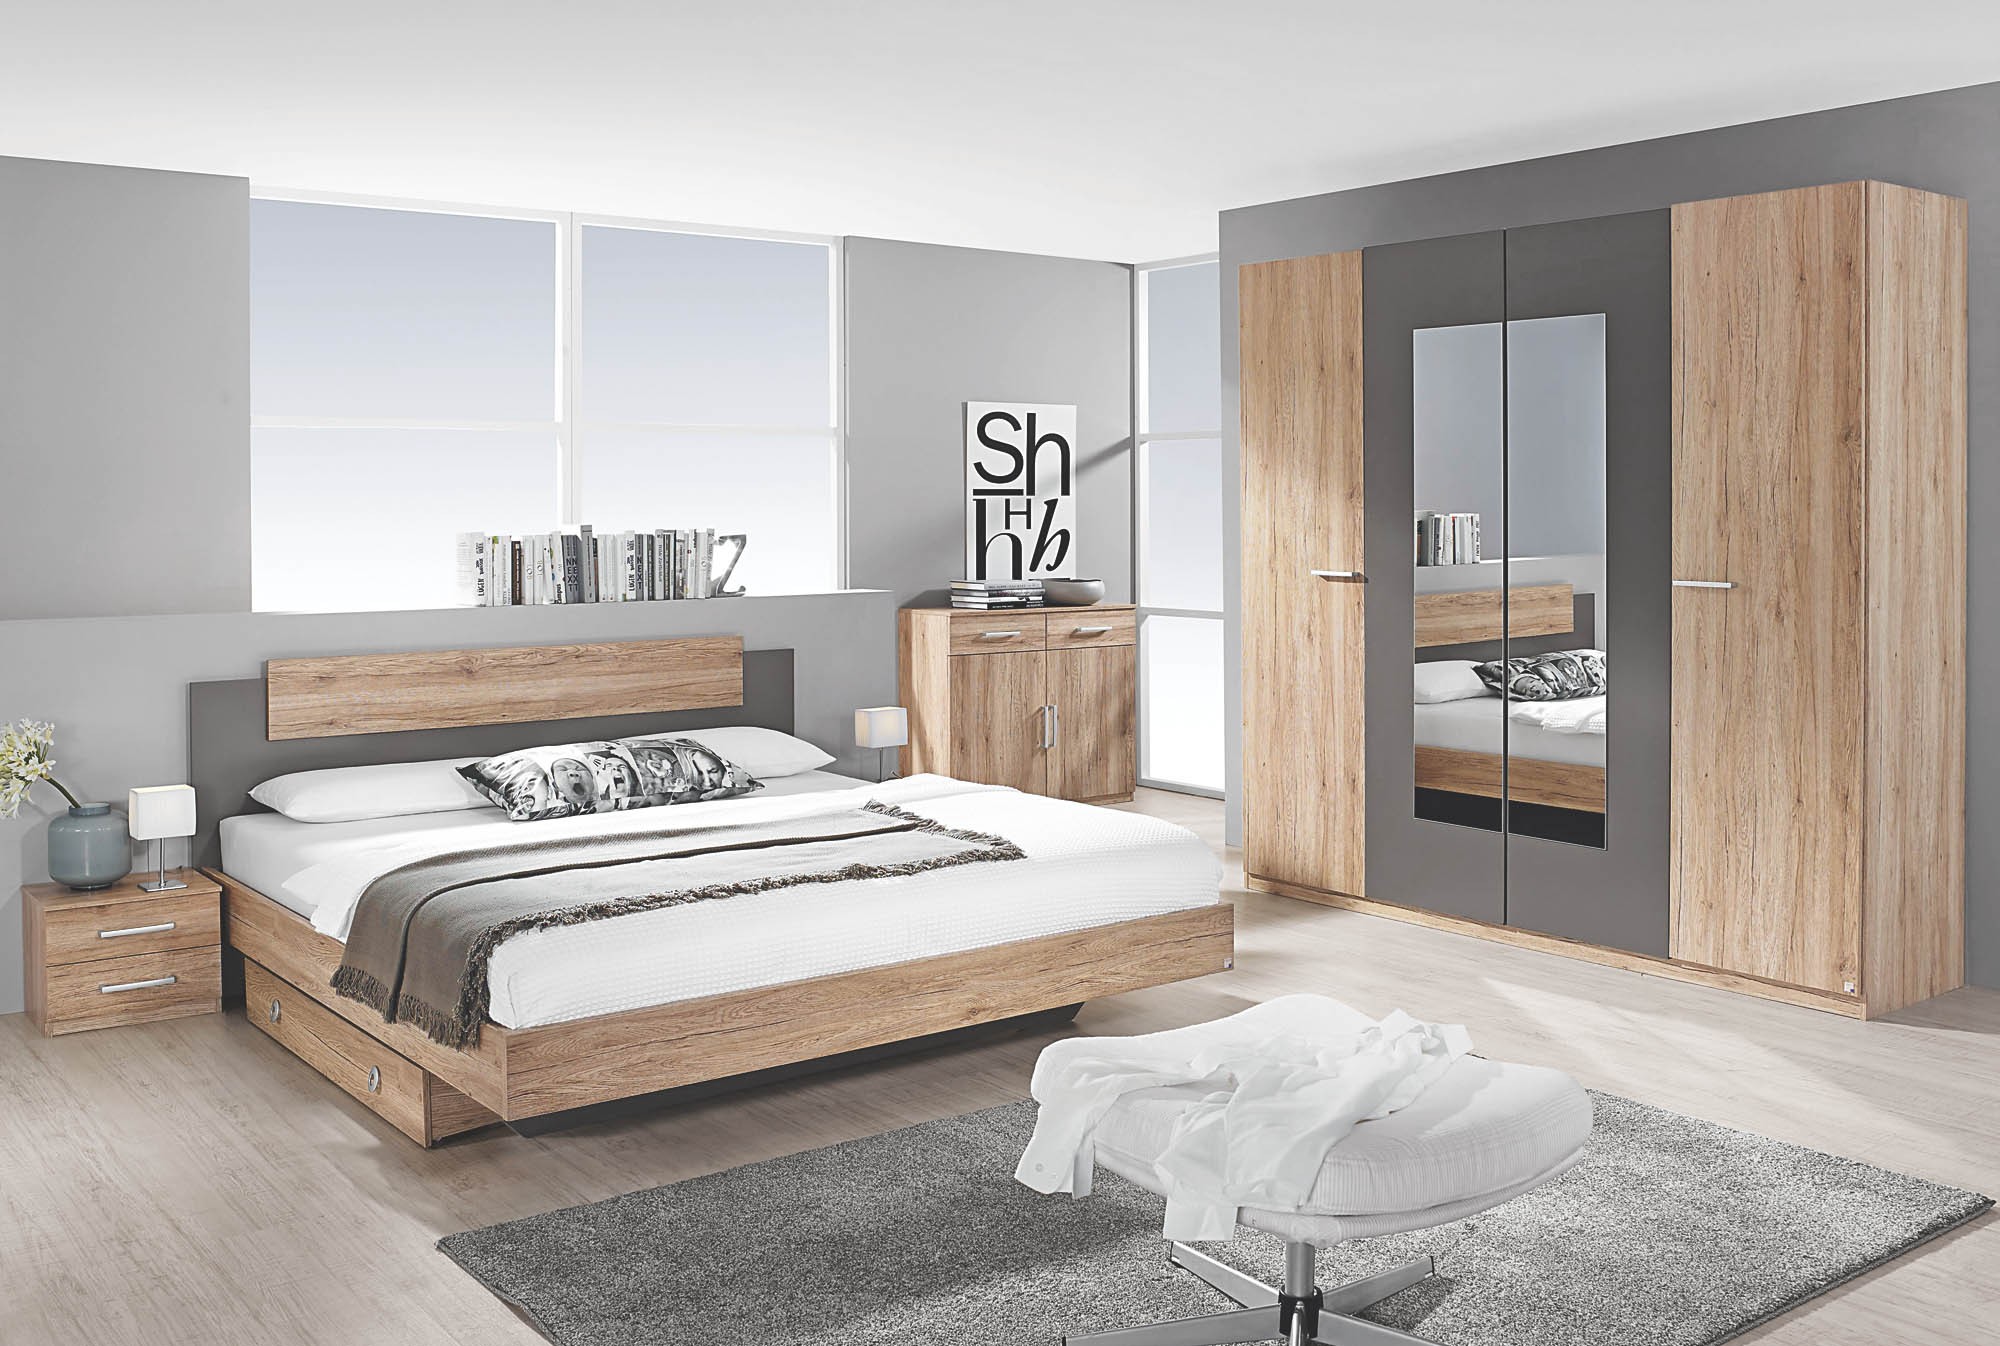 schlafzimmer 4 tlg borba von rauch packs mit 160x200 bett eiche sanremo hell lavagrau. Black Bedroom Furniture Sets. Home Design Ideas